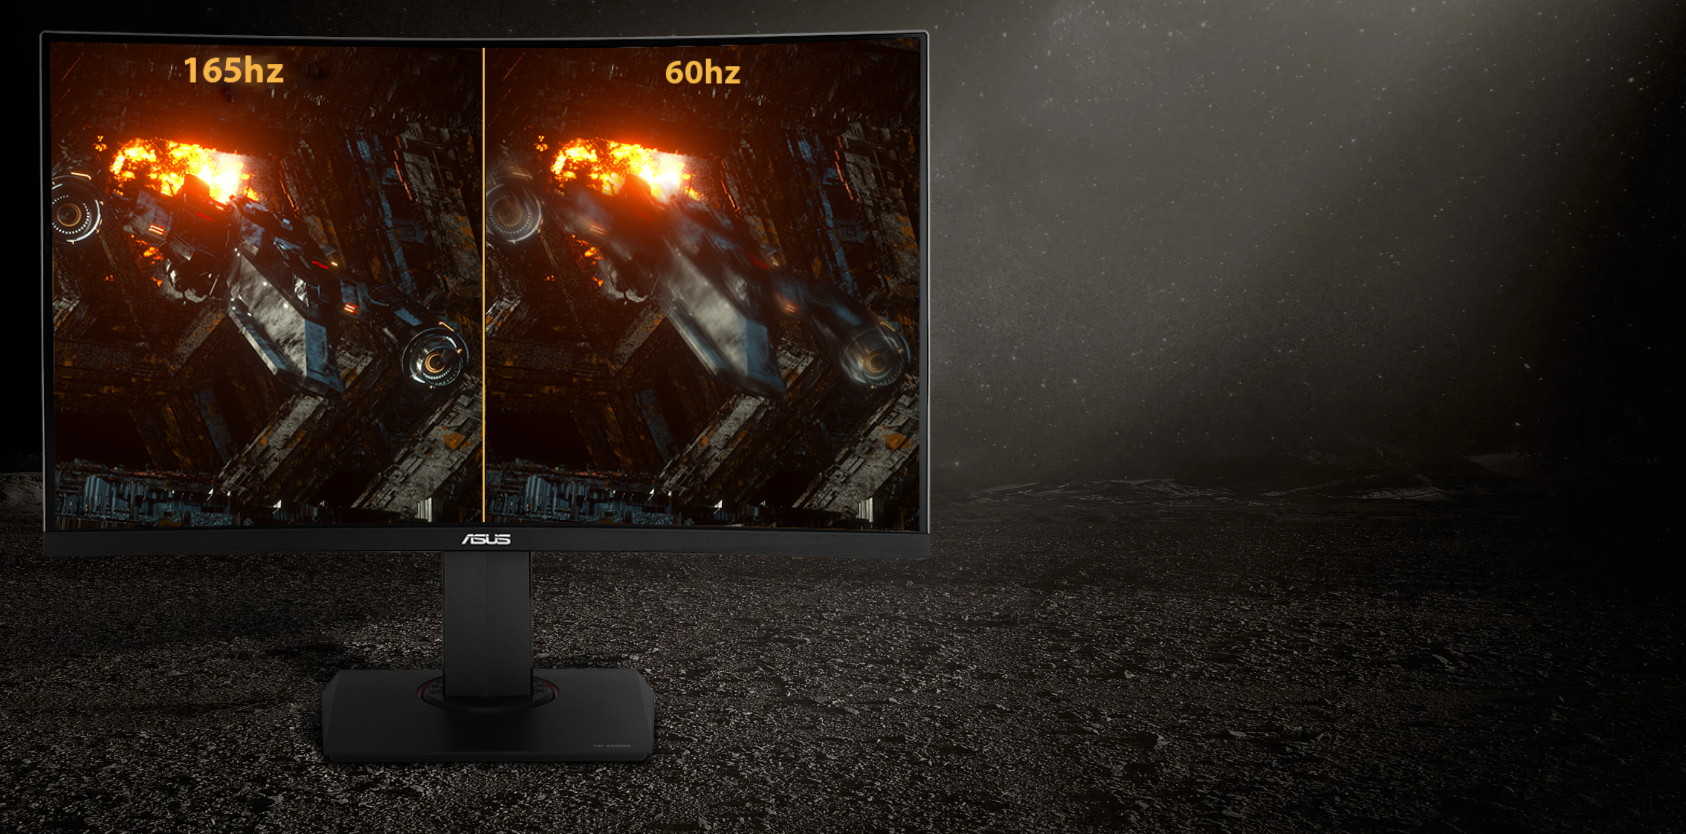 one image splited into two as screen, showing difference effect between 165Hz and 60Hz